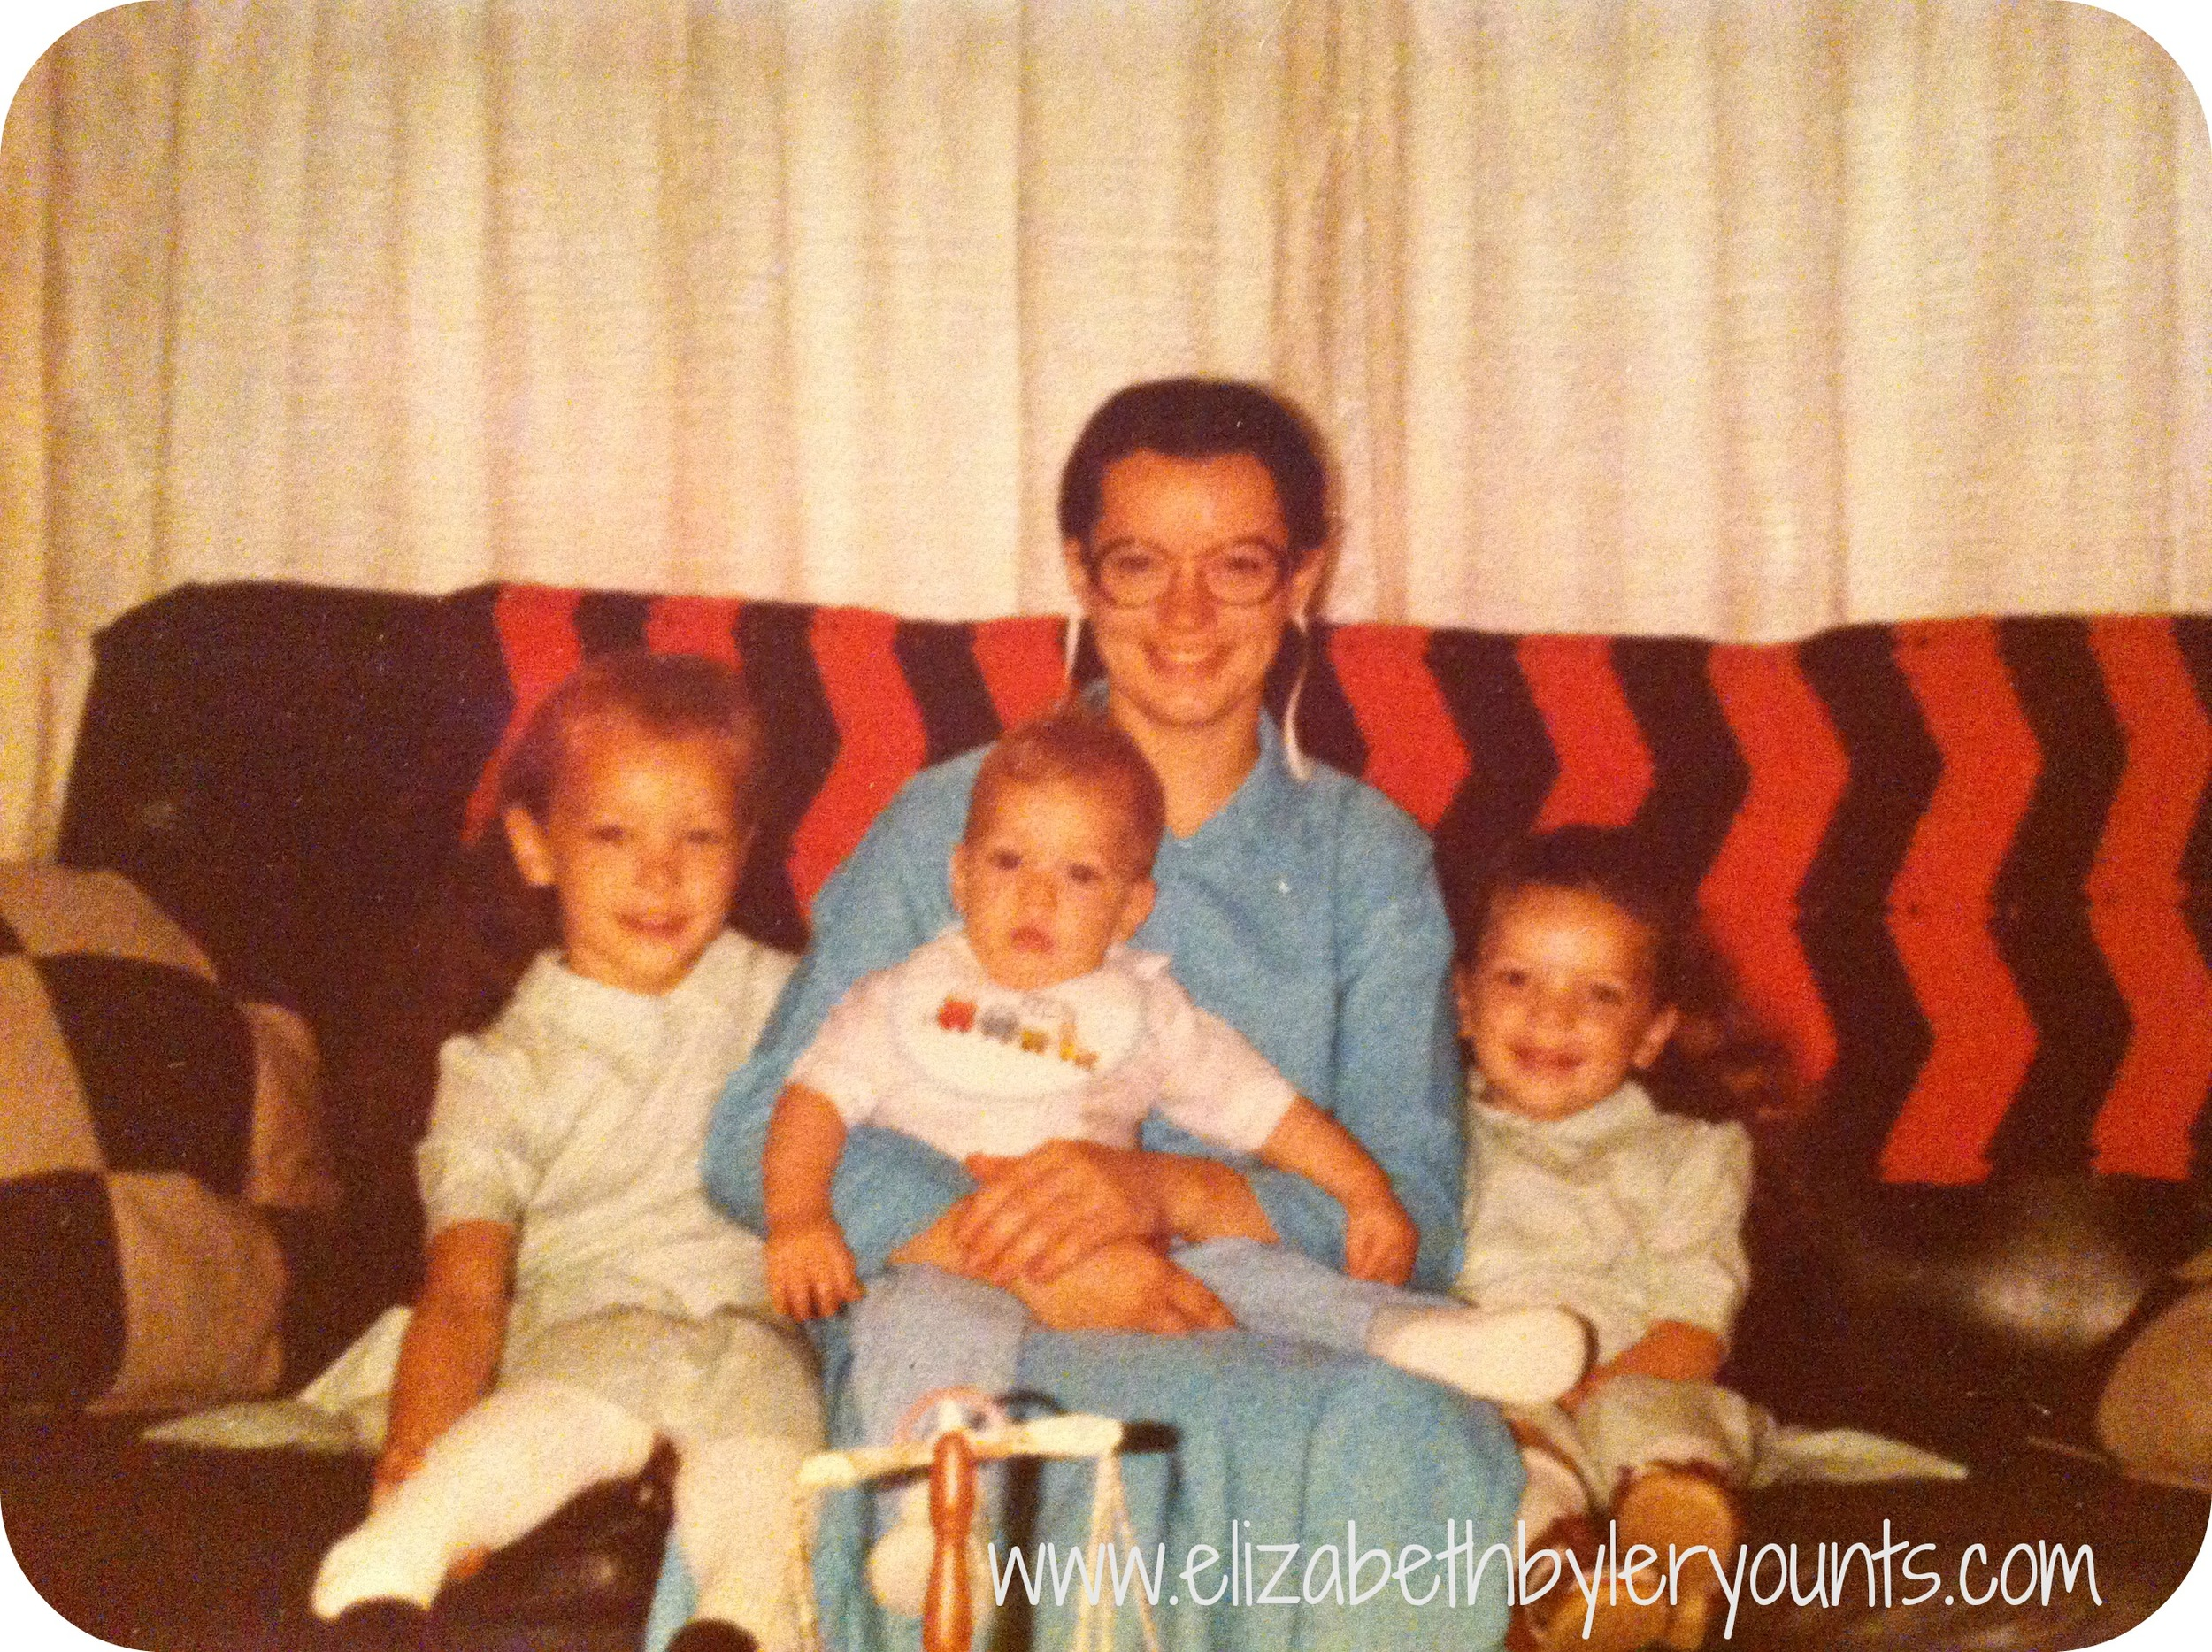 (left to right) my sister Emmalene, my mom Esther holding my brother Joseph, and me